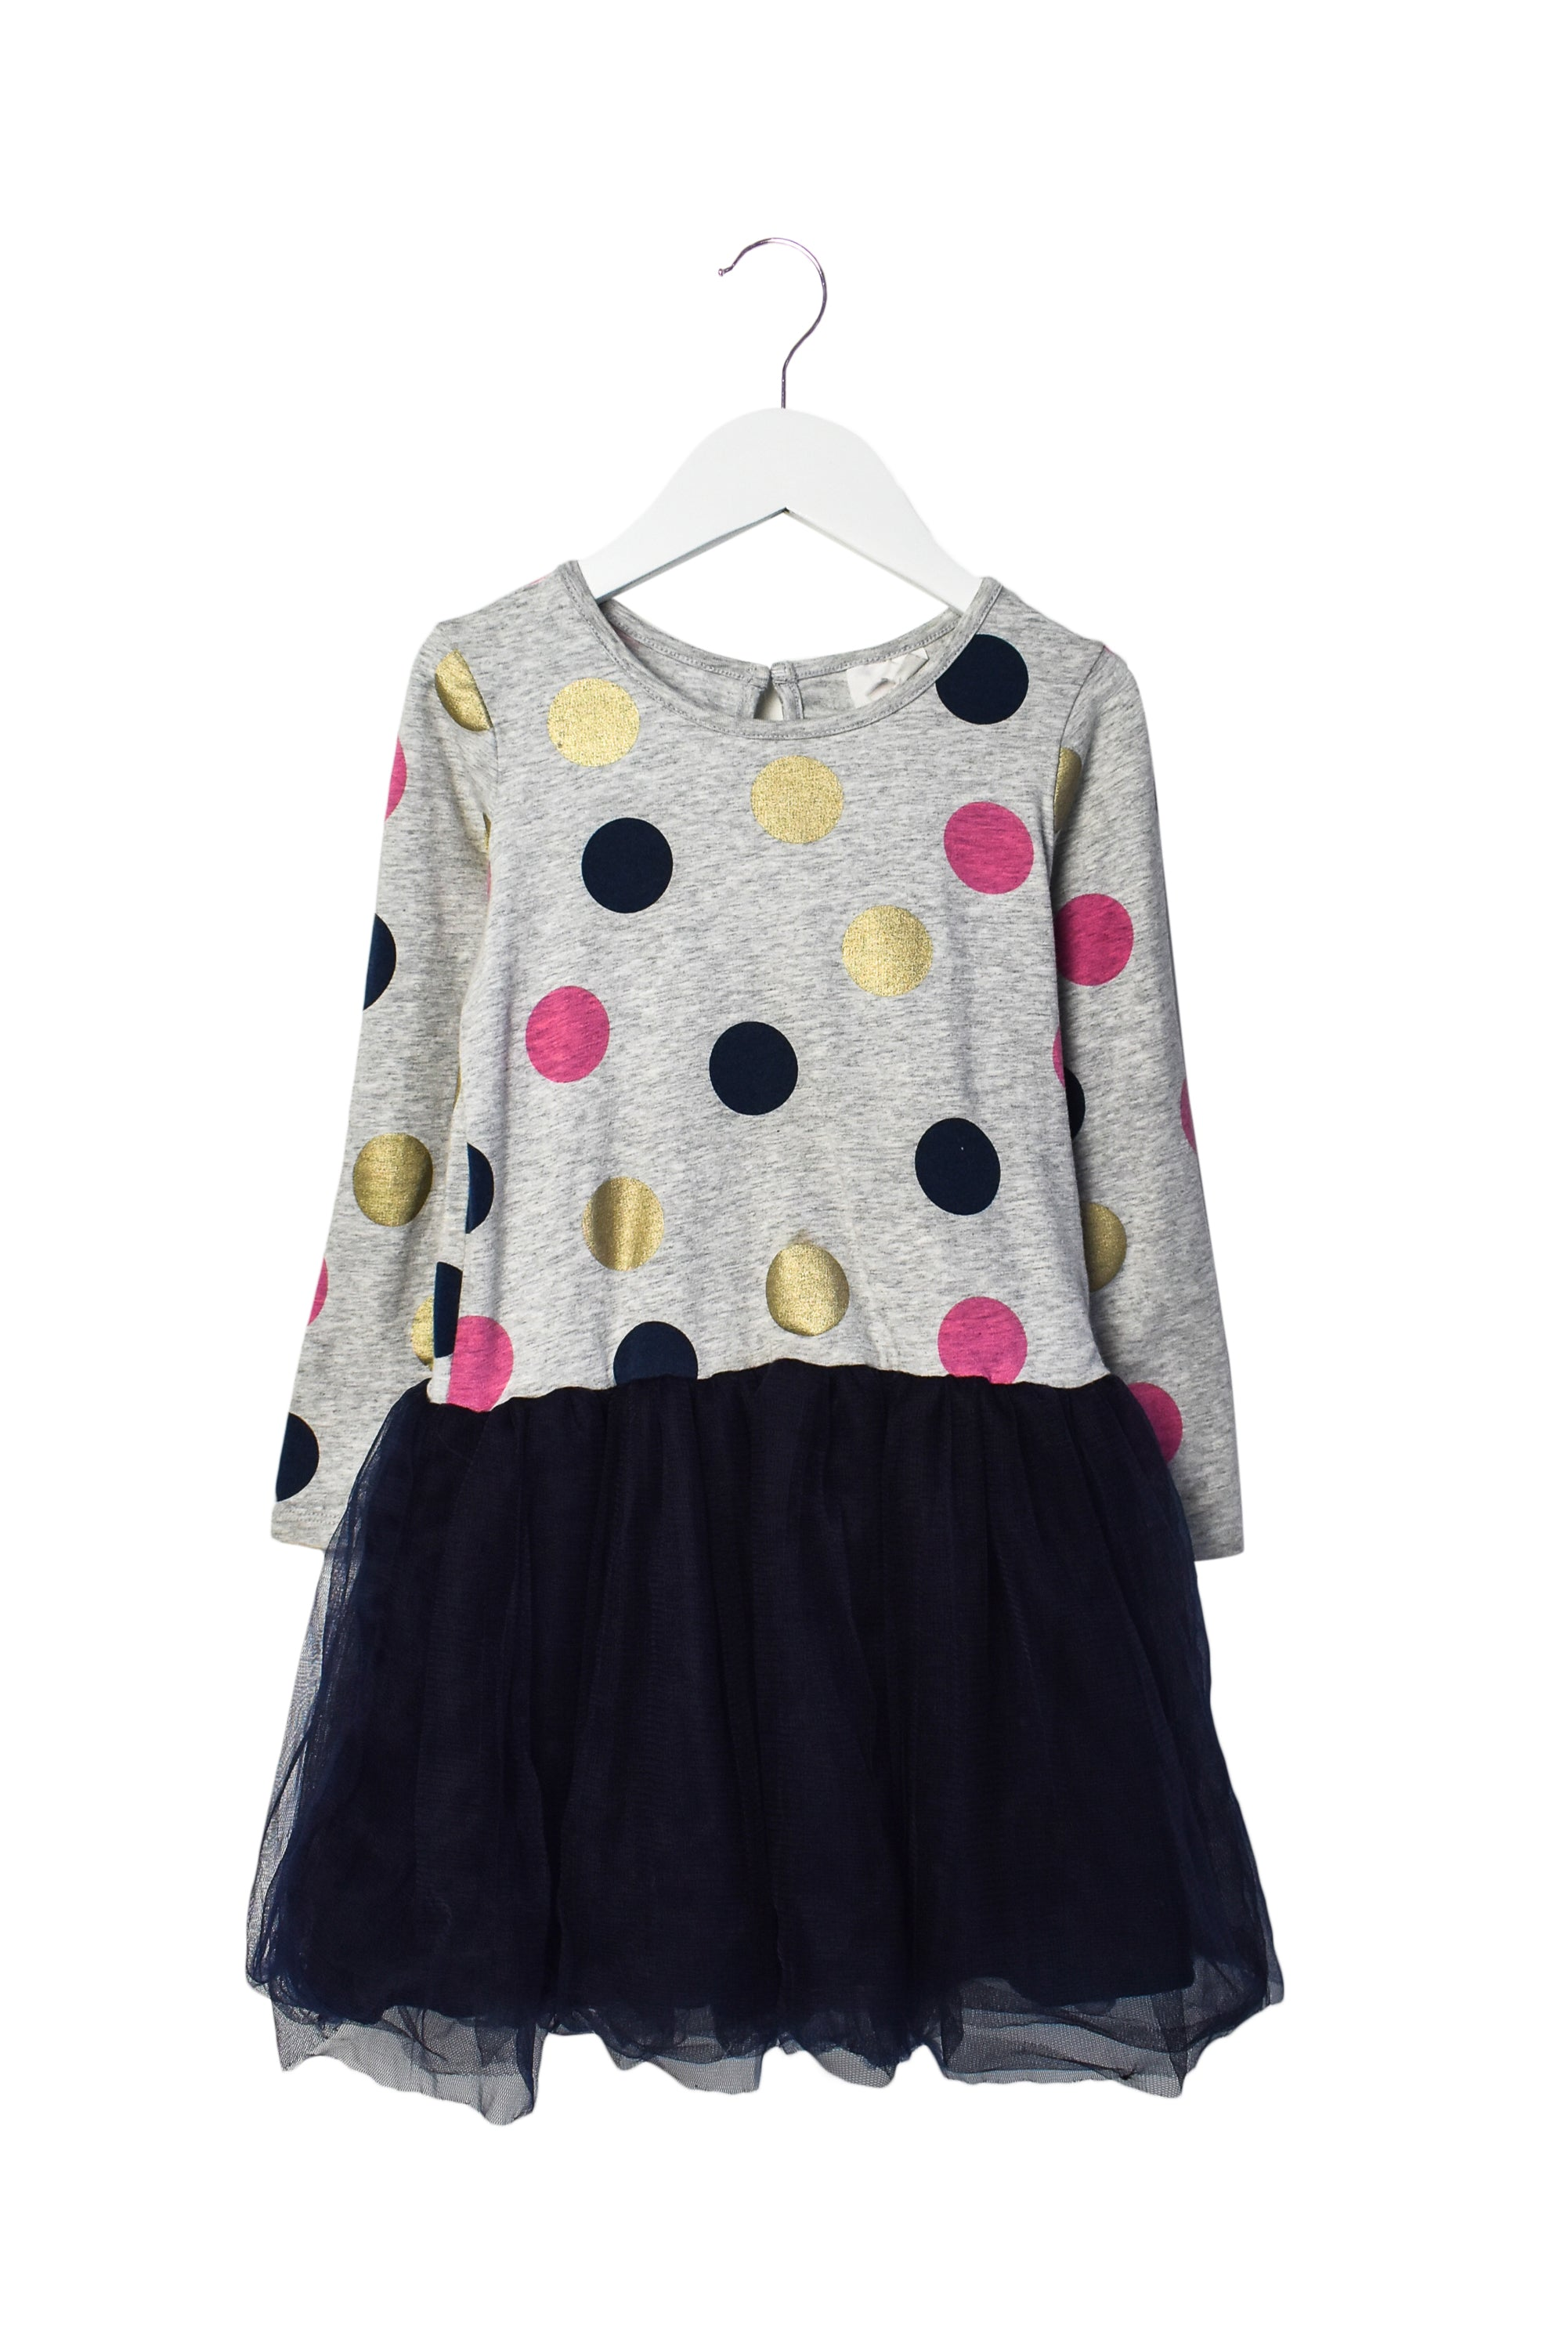 10006831 Seed Kids~ Dress 4-5T at Retykle